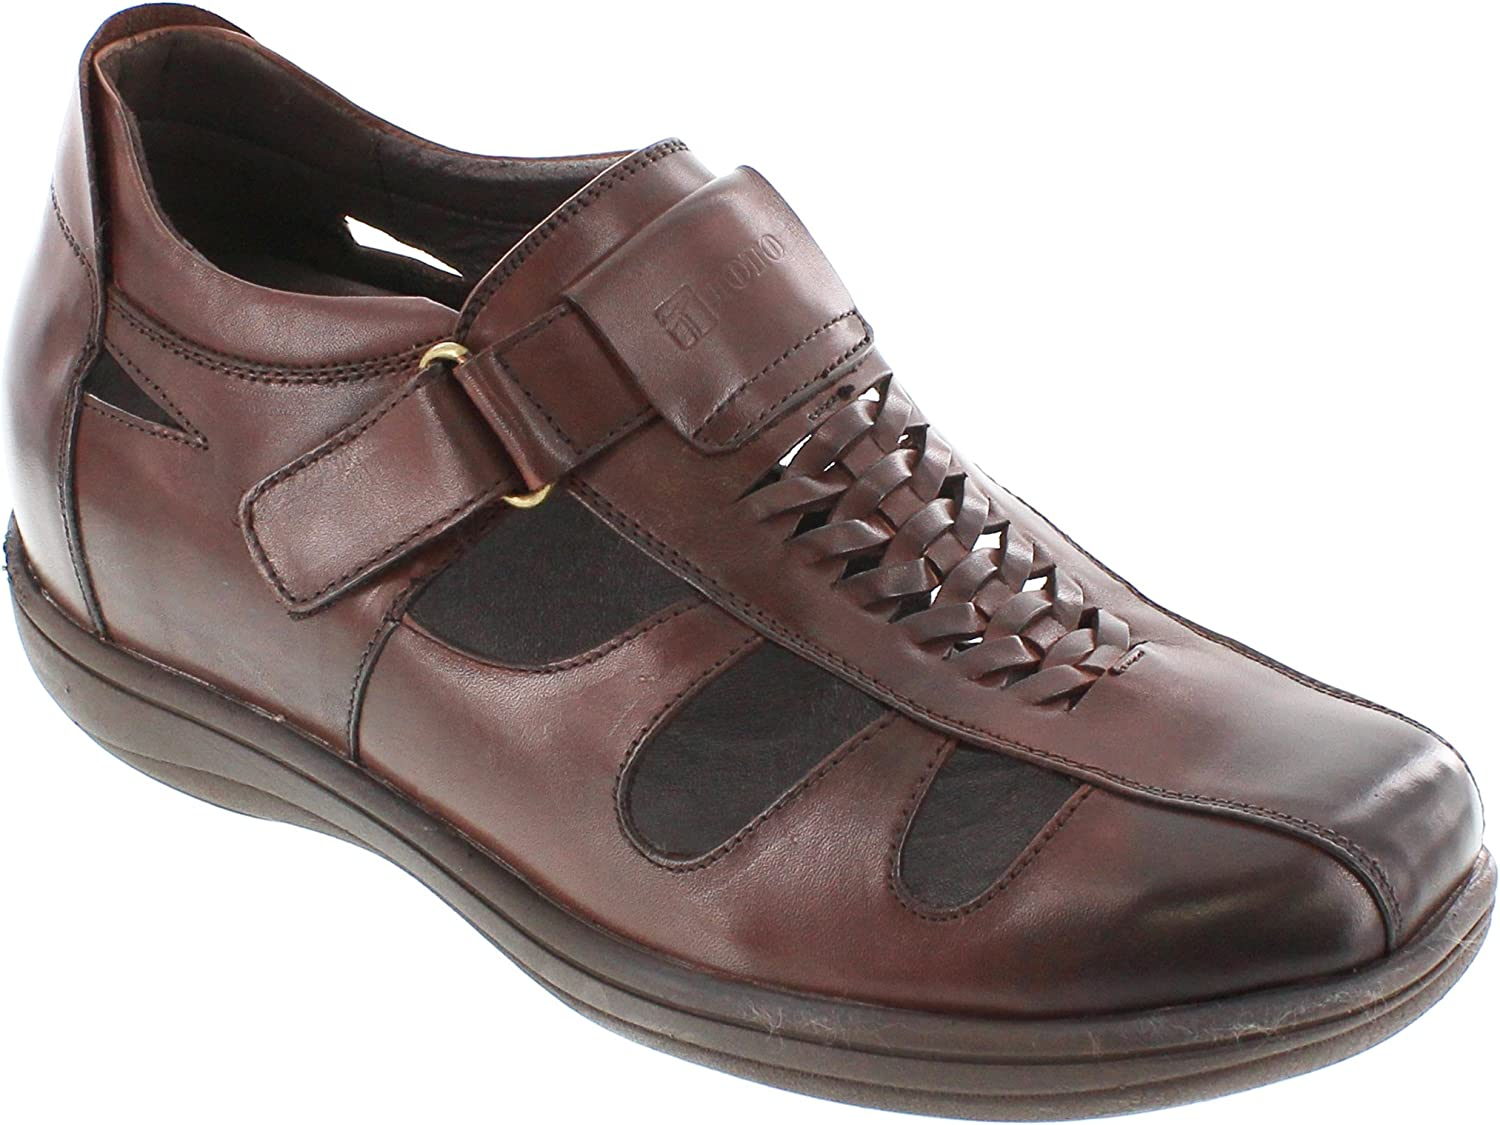 TOTO - G13072 - 3.2 Inches Taller - Height Increasing Elevator shoes (Dark Brown open-toe Sandals)